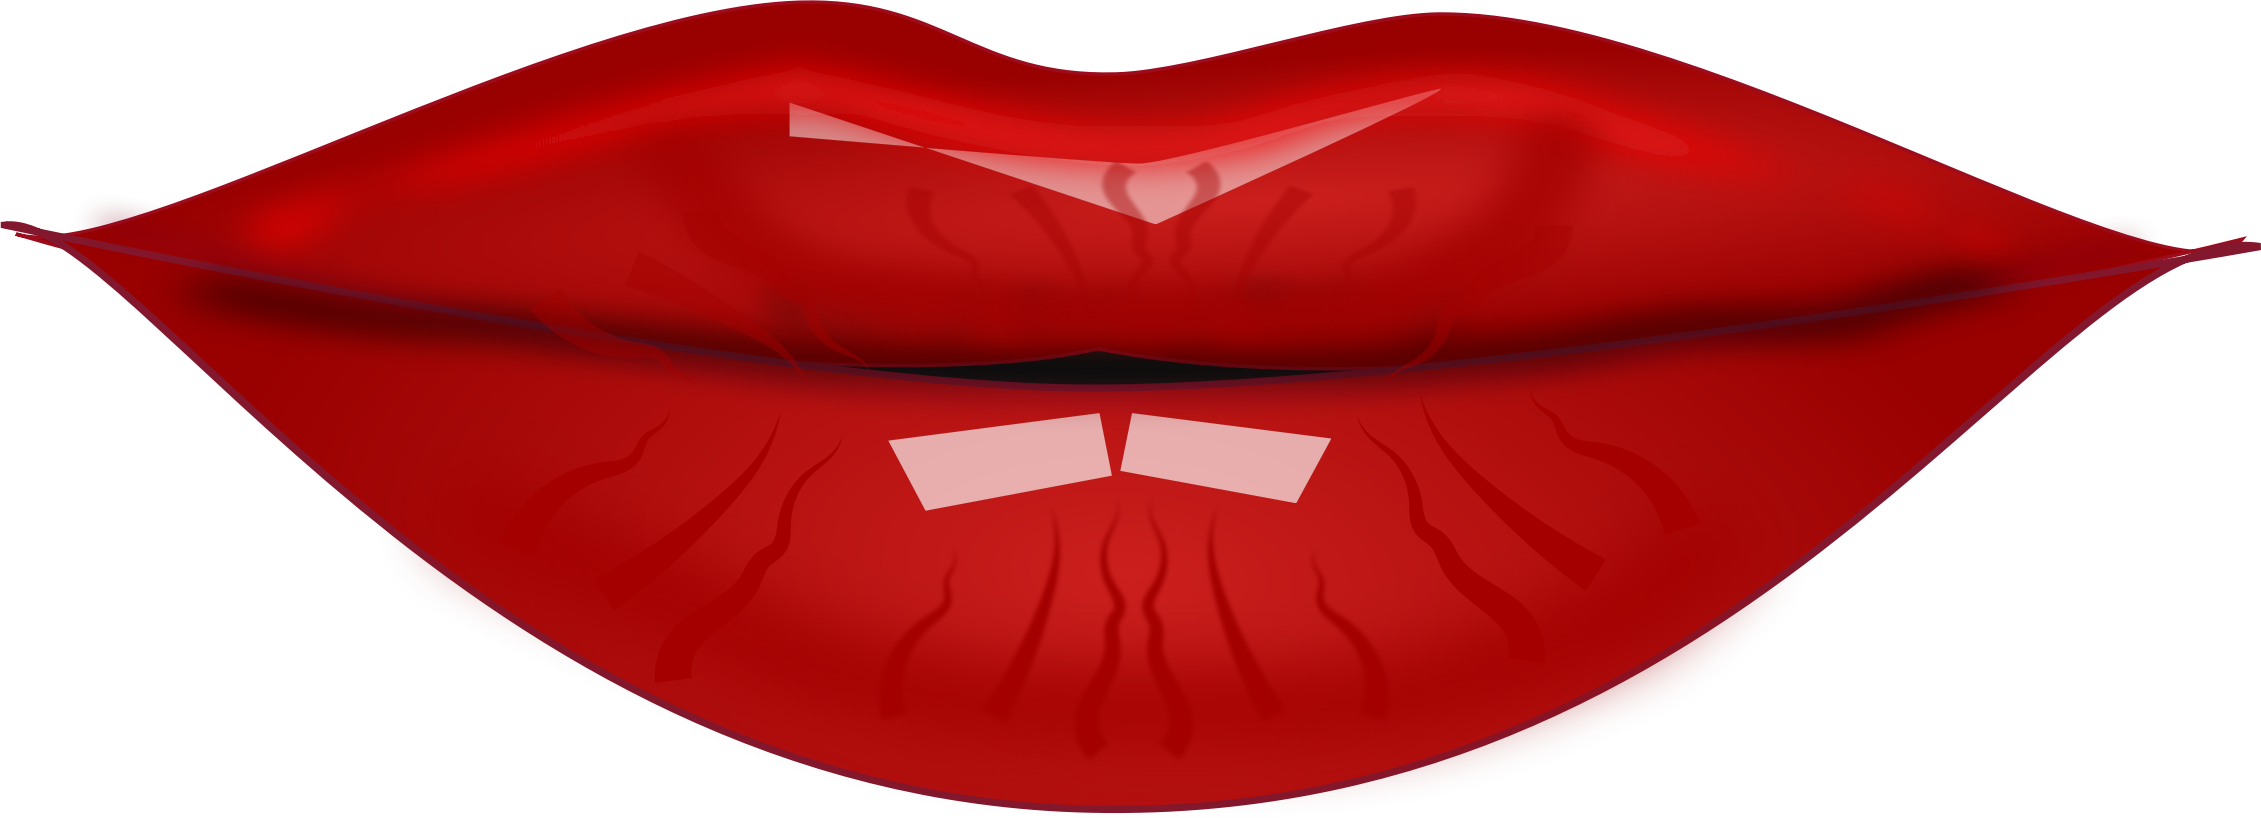 Lipstick clipart clear background. Lips png transparent images